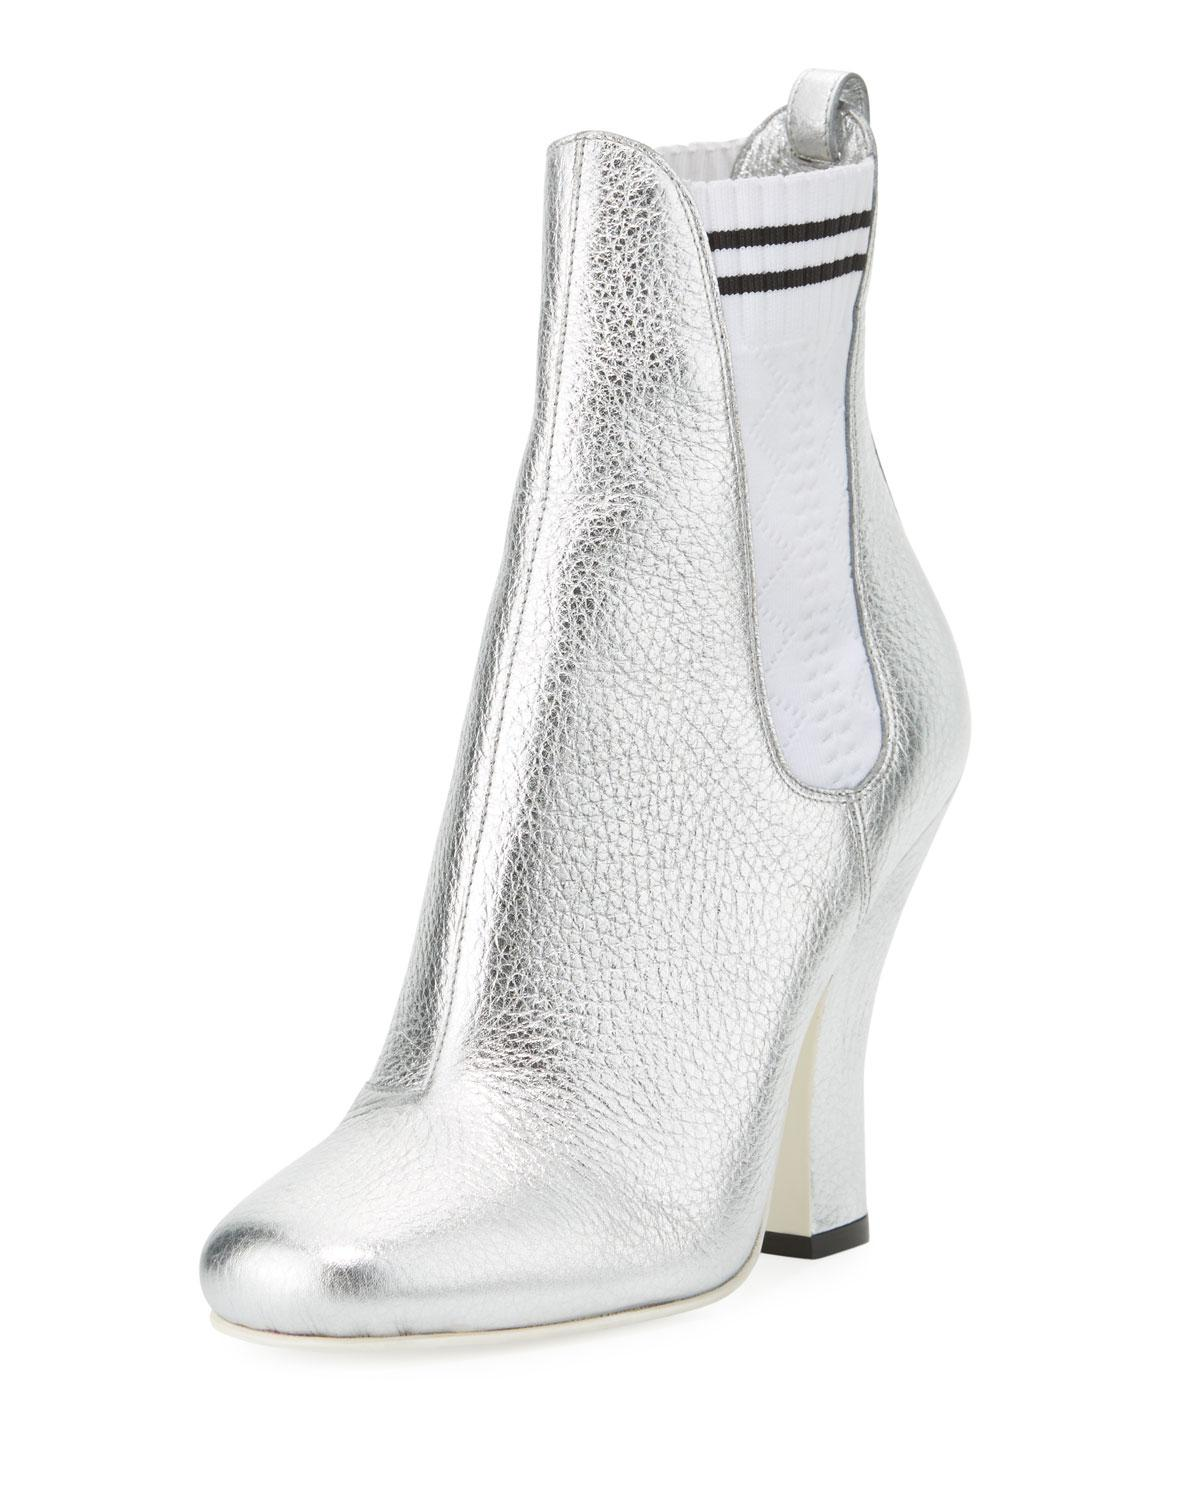 Fendi Antoinette Ankle Boots w/ Tags cheap sale for nice sale amazing price clearance sale buy cheap clearance 46ogPZB3G4